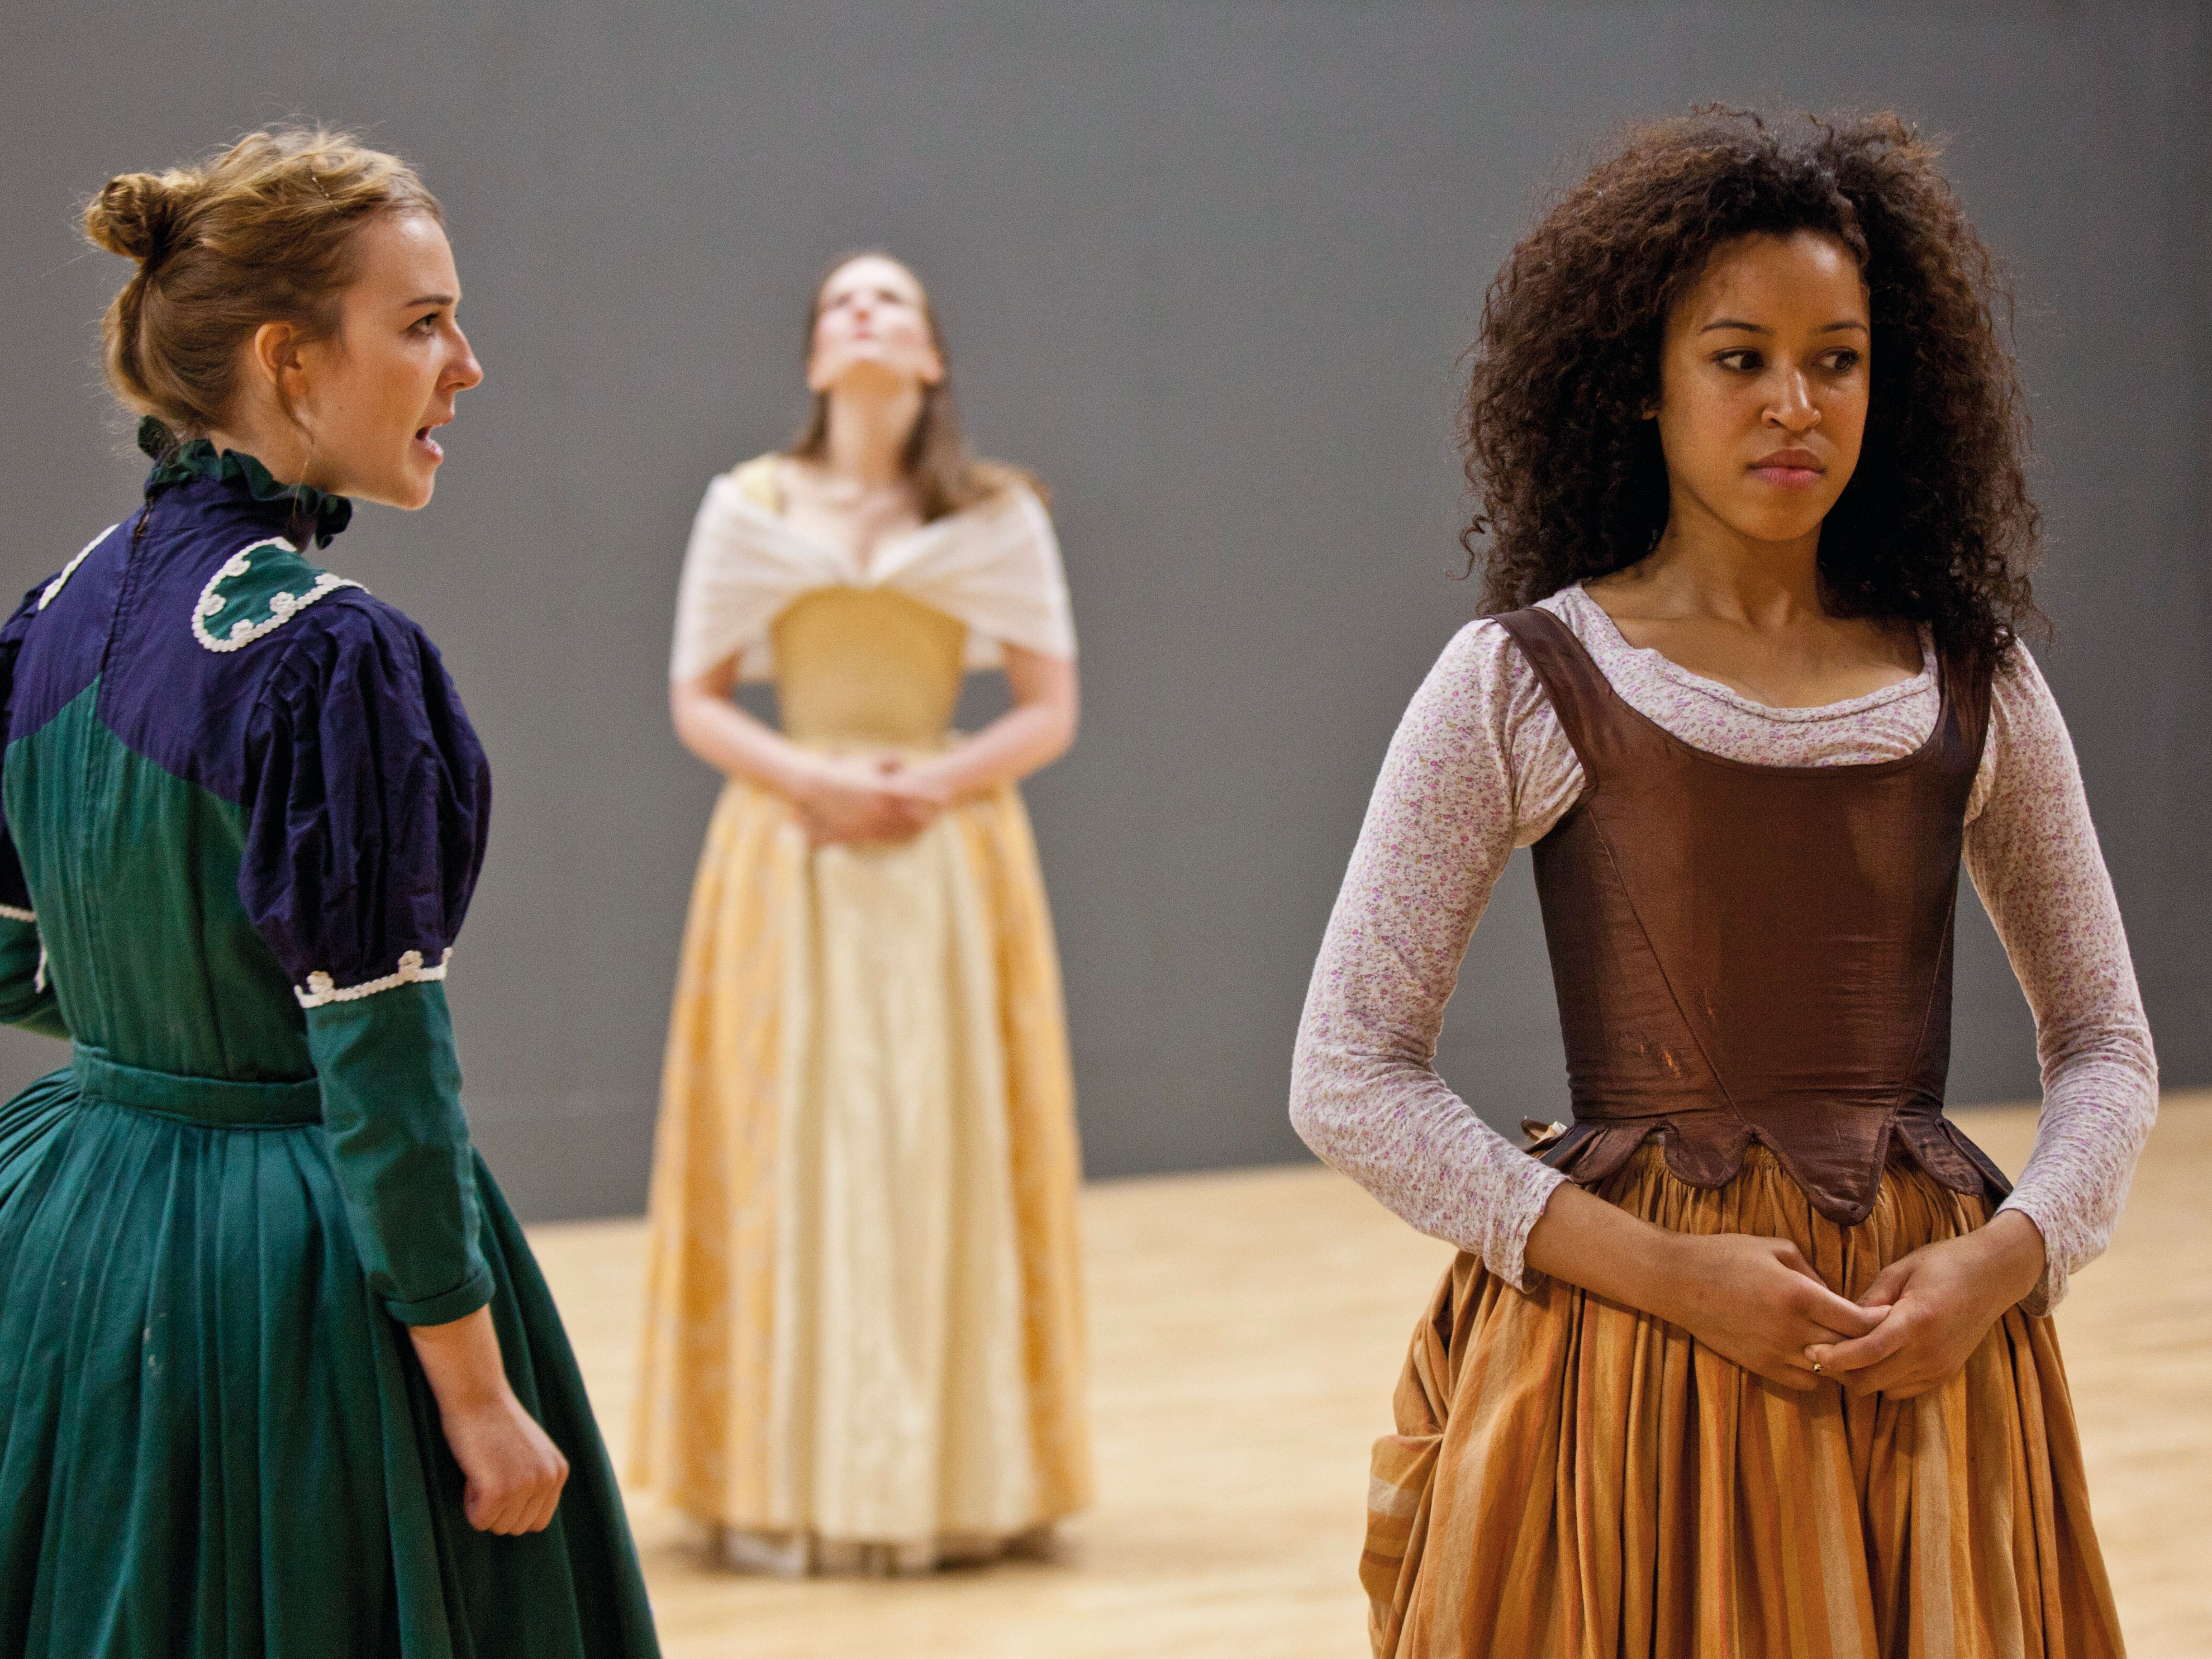 Acting students rehearsing in costume.